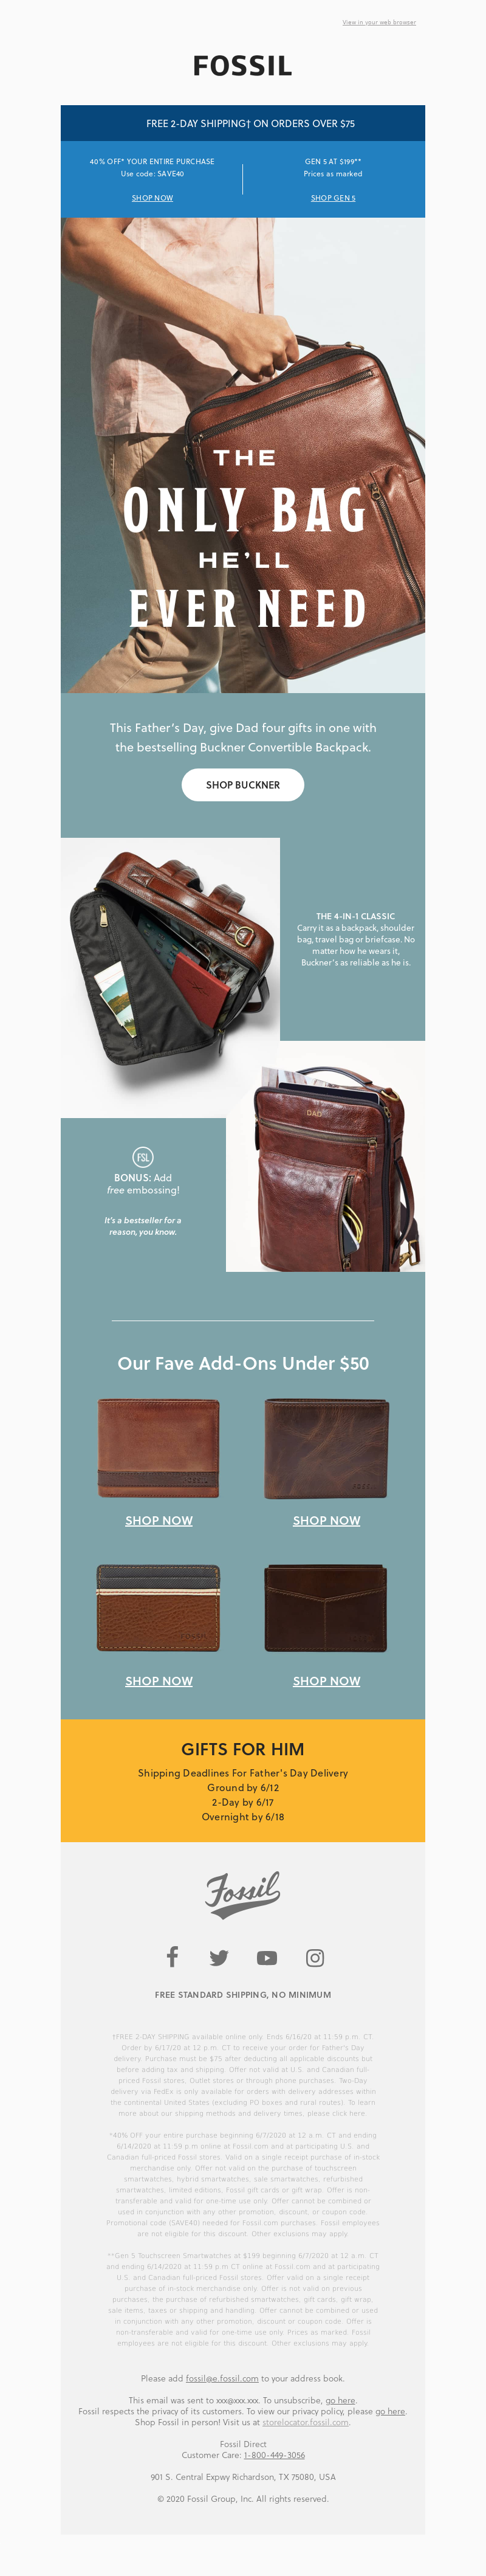 View in your web browser Fossil FREE 2-DAY SHIPPING† ON ORDERS OVER $75 40%